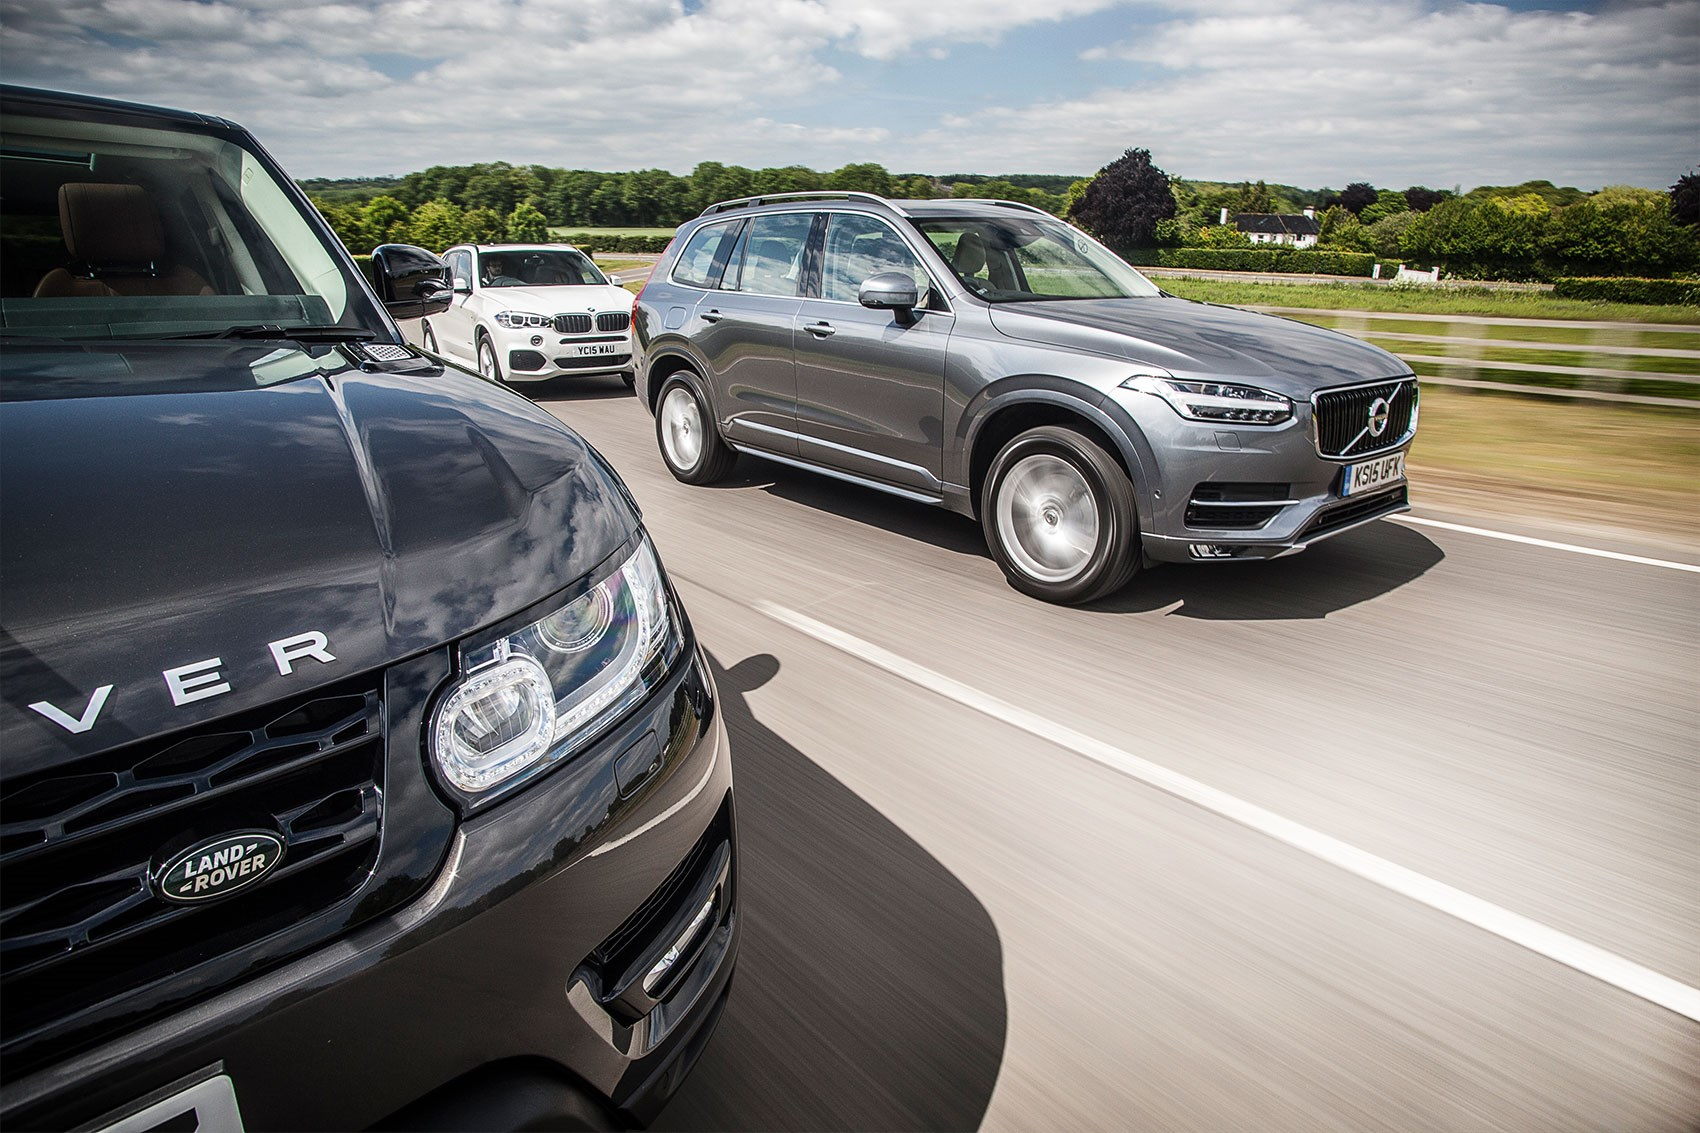 hight resolution of xc90 s bold new face will define the next wave of volvos have to admit it looks minty fresh volvo xc90 makes range rover sport